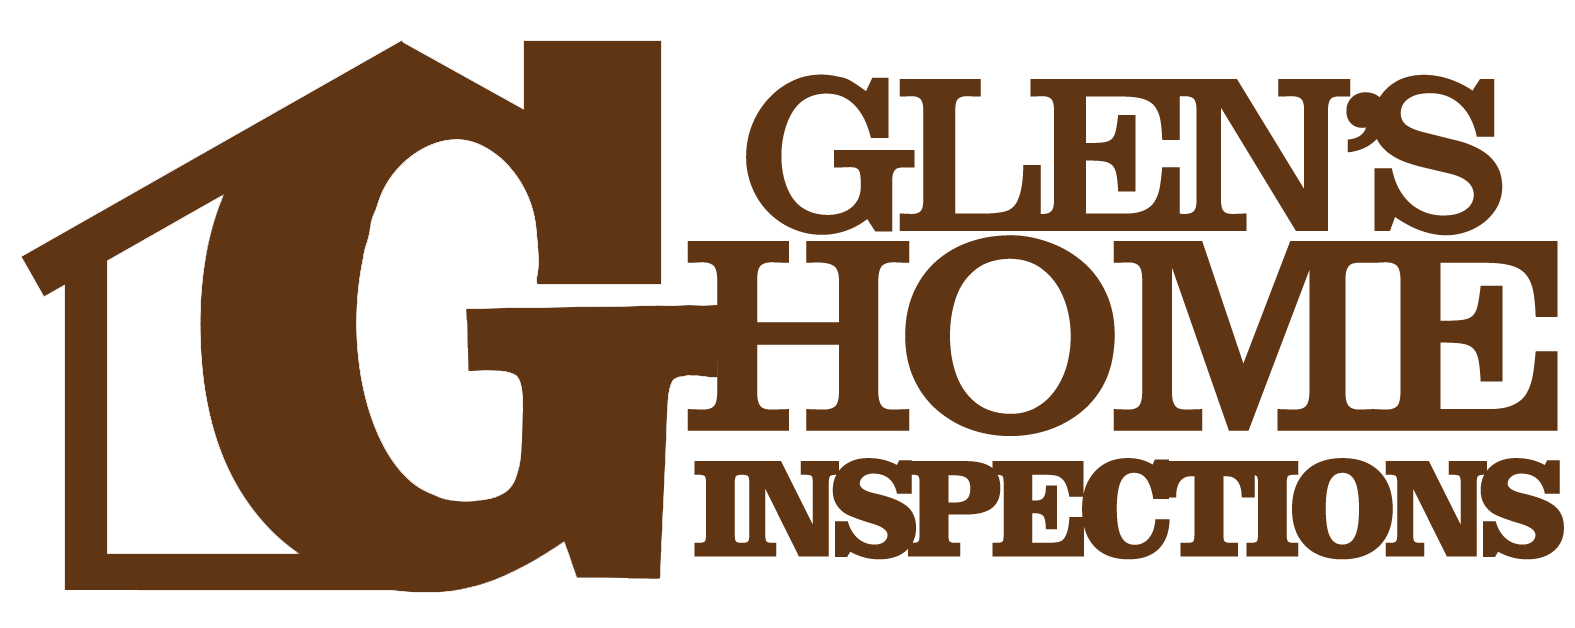 Glen's Home Inspection